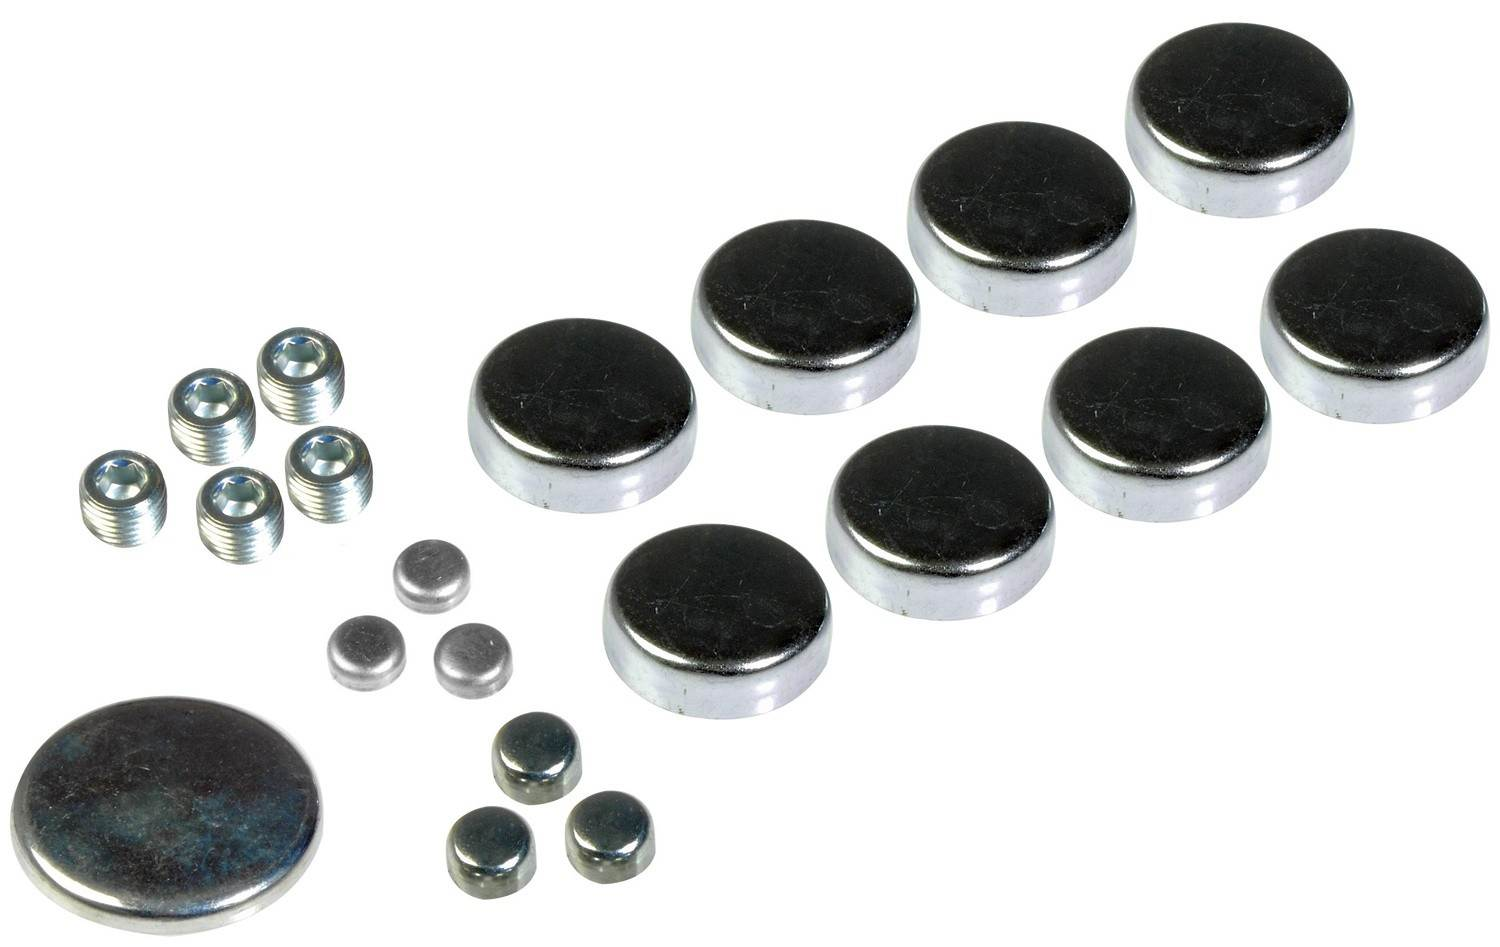 DORMAN - AUTOGRADE - Engine Expansion Plug Kit - DOC 557-042